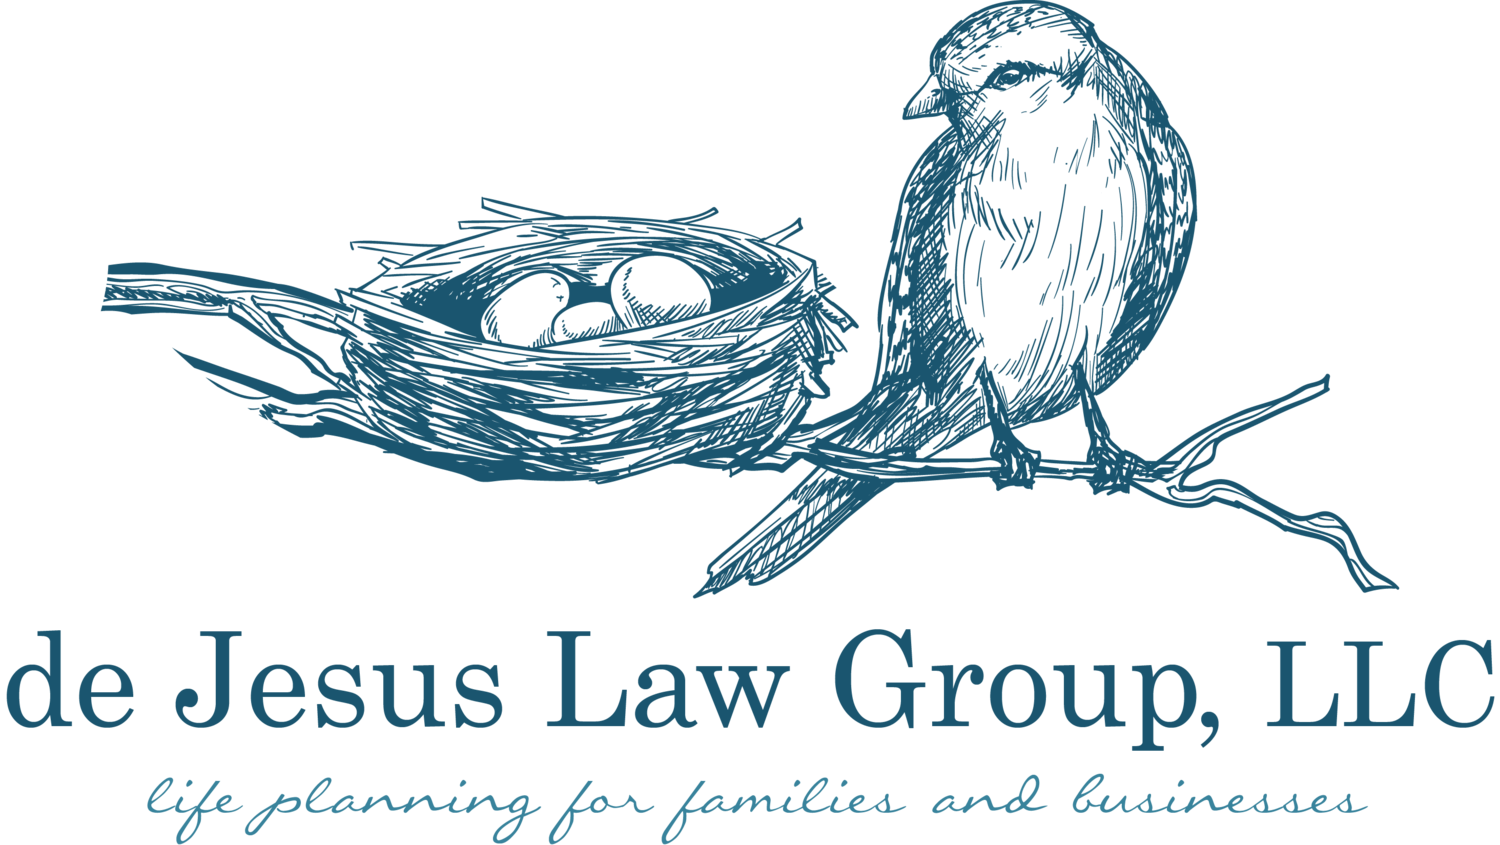 de Jesus Law Group